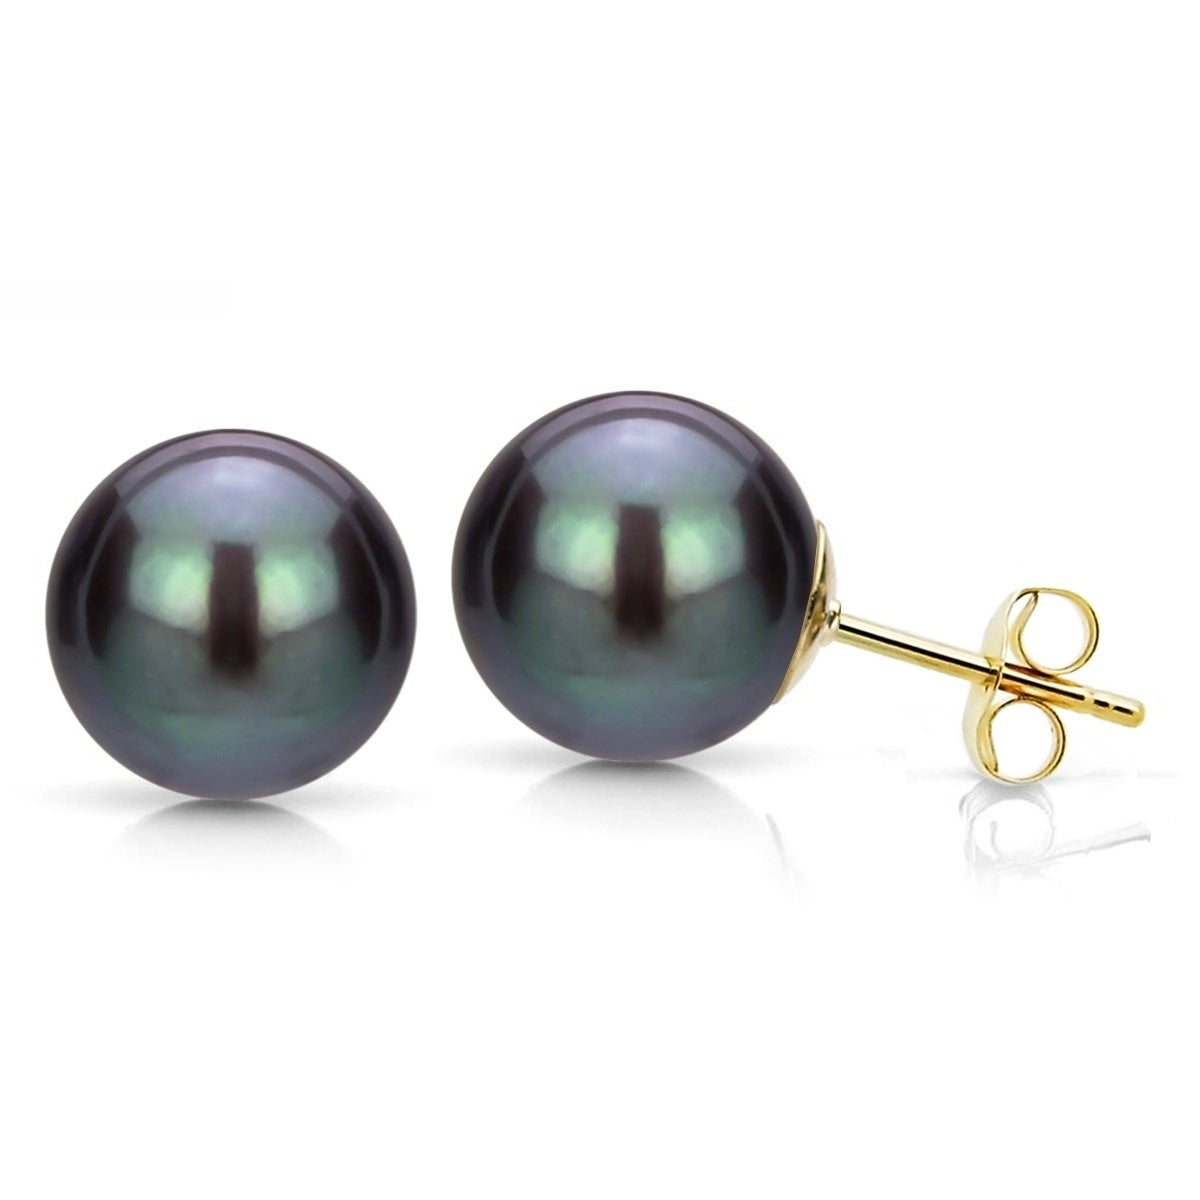 b647f9dc6 Shop DaVonna 14k Yellow Gold 6-7mm Round Freshwater Pearl Stud Earrings -  Free Shipping Today - Overstock - 38992